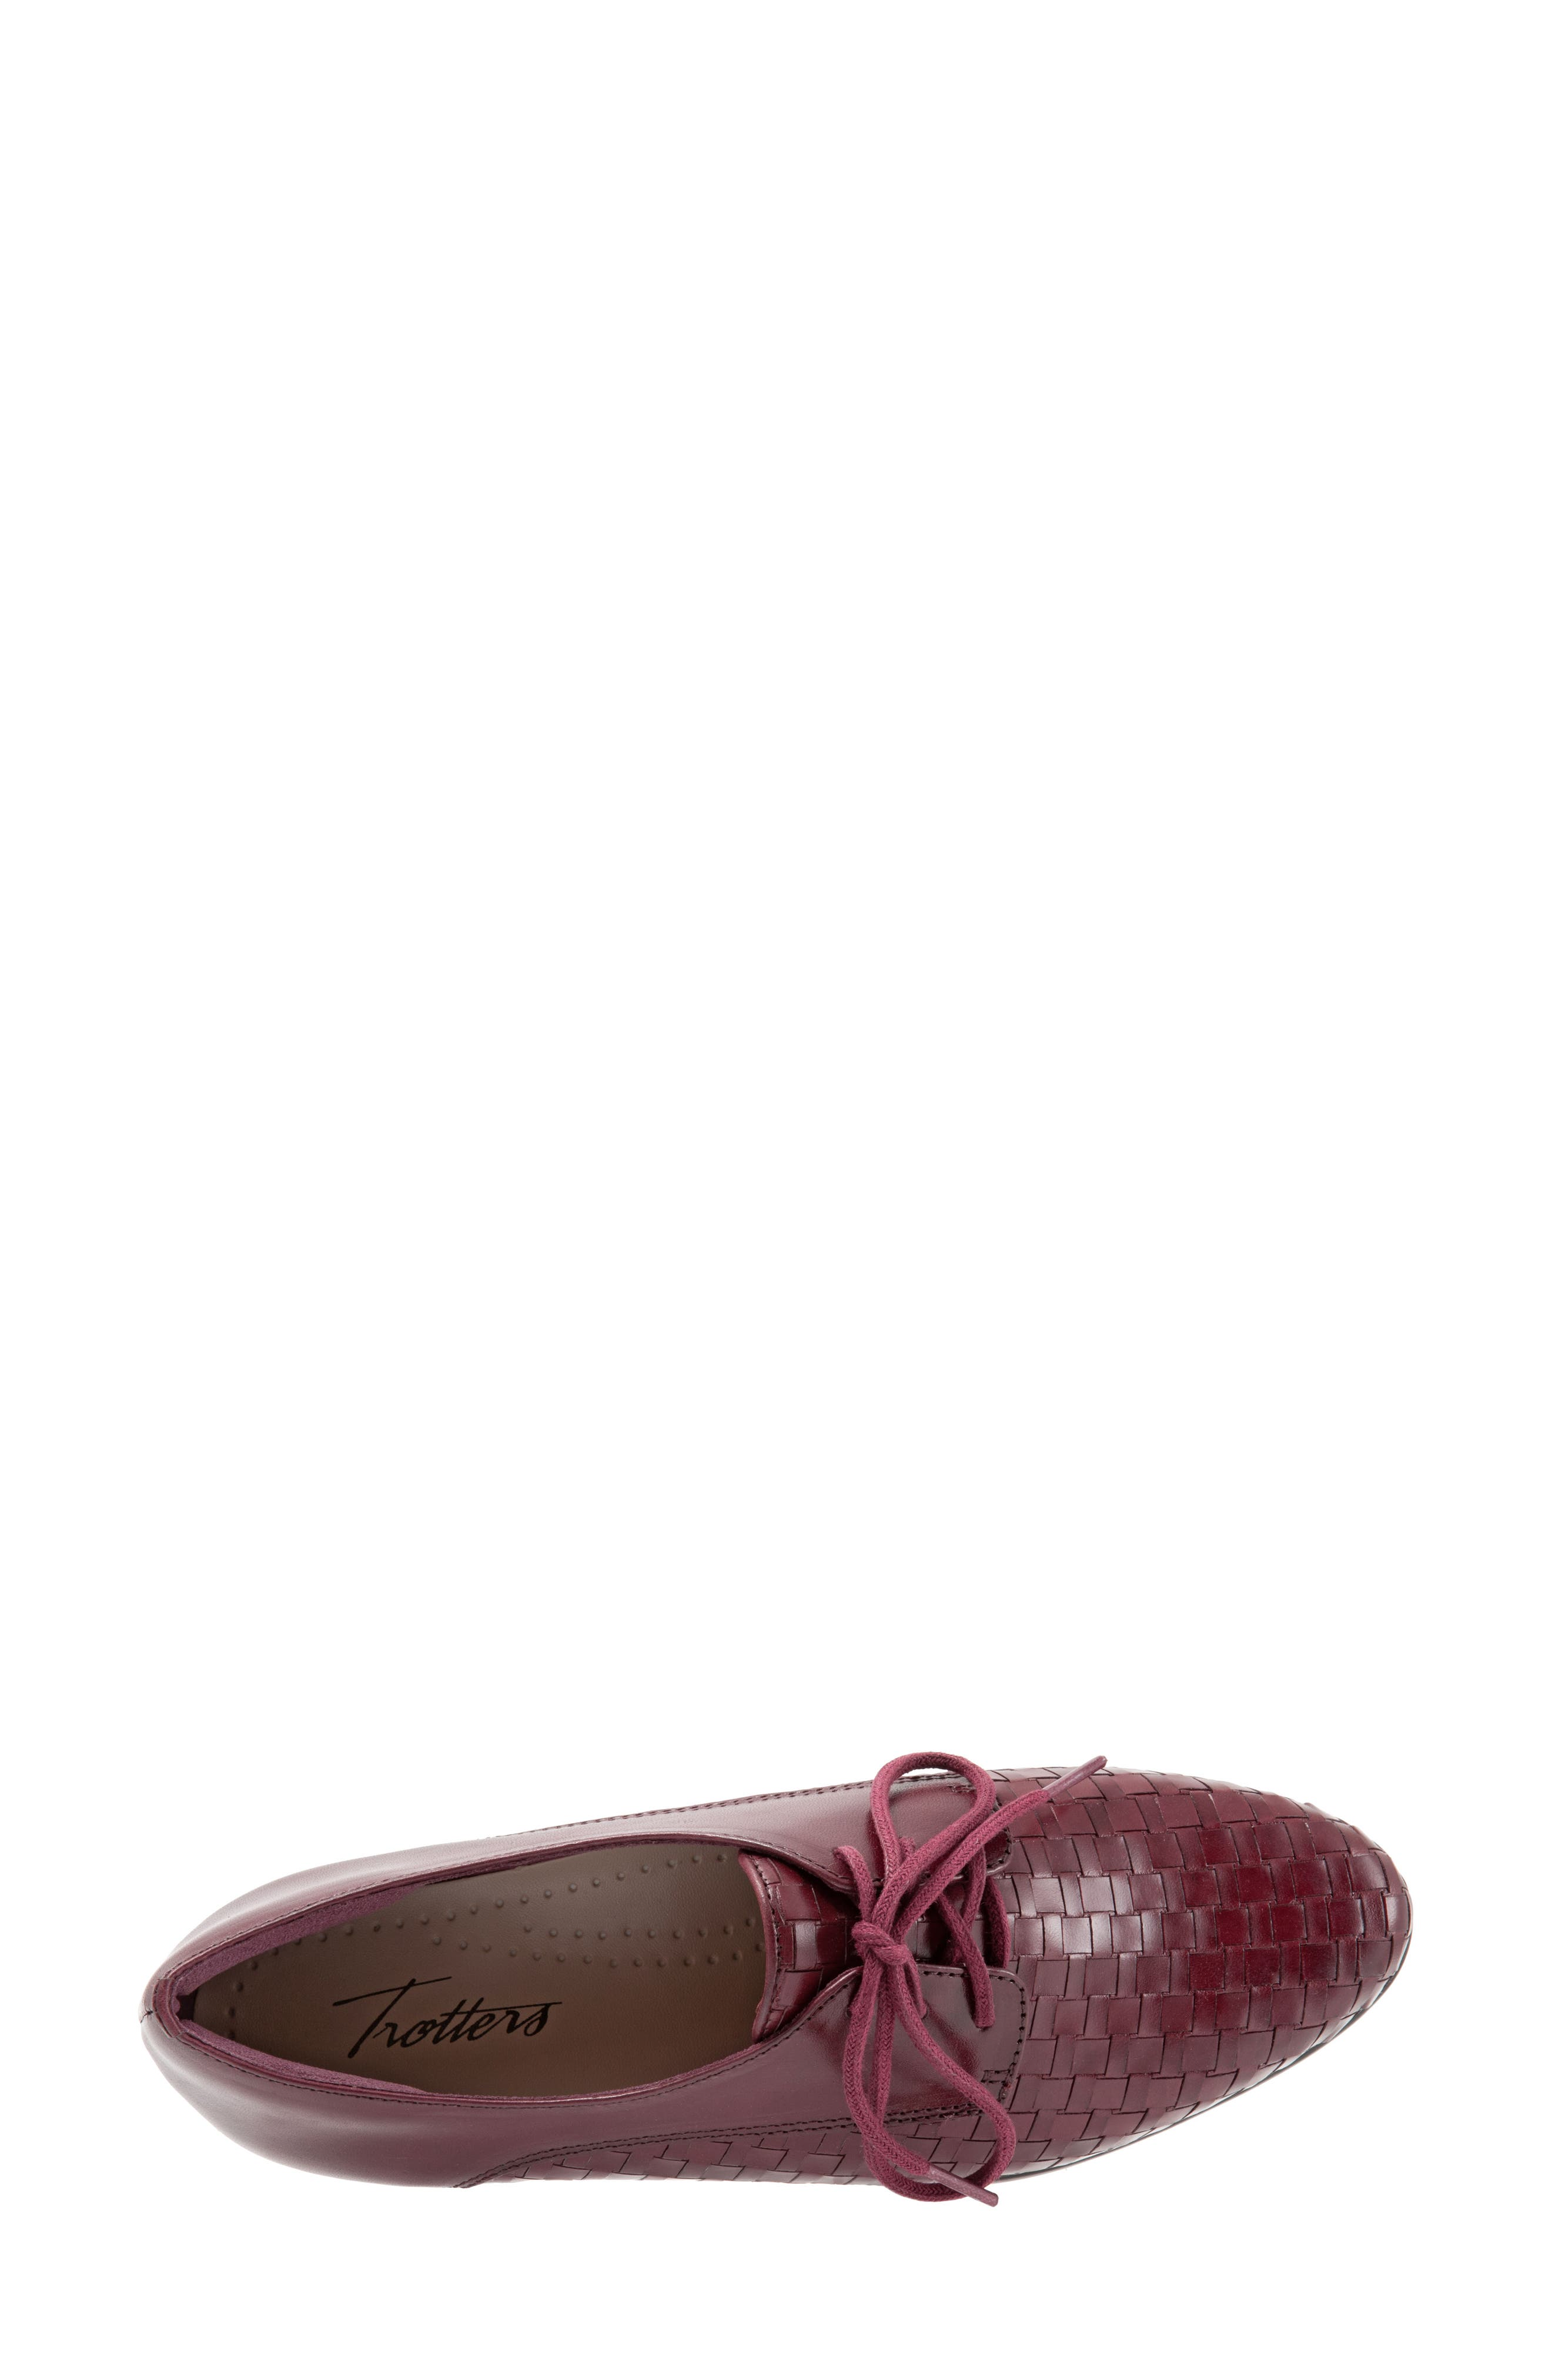 Lizzie Derby Flat,                             Alternate thumbnail 5, color,                             BLACK CHERRY LEATHER